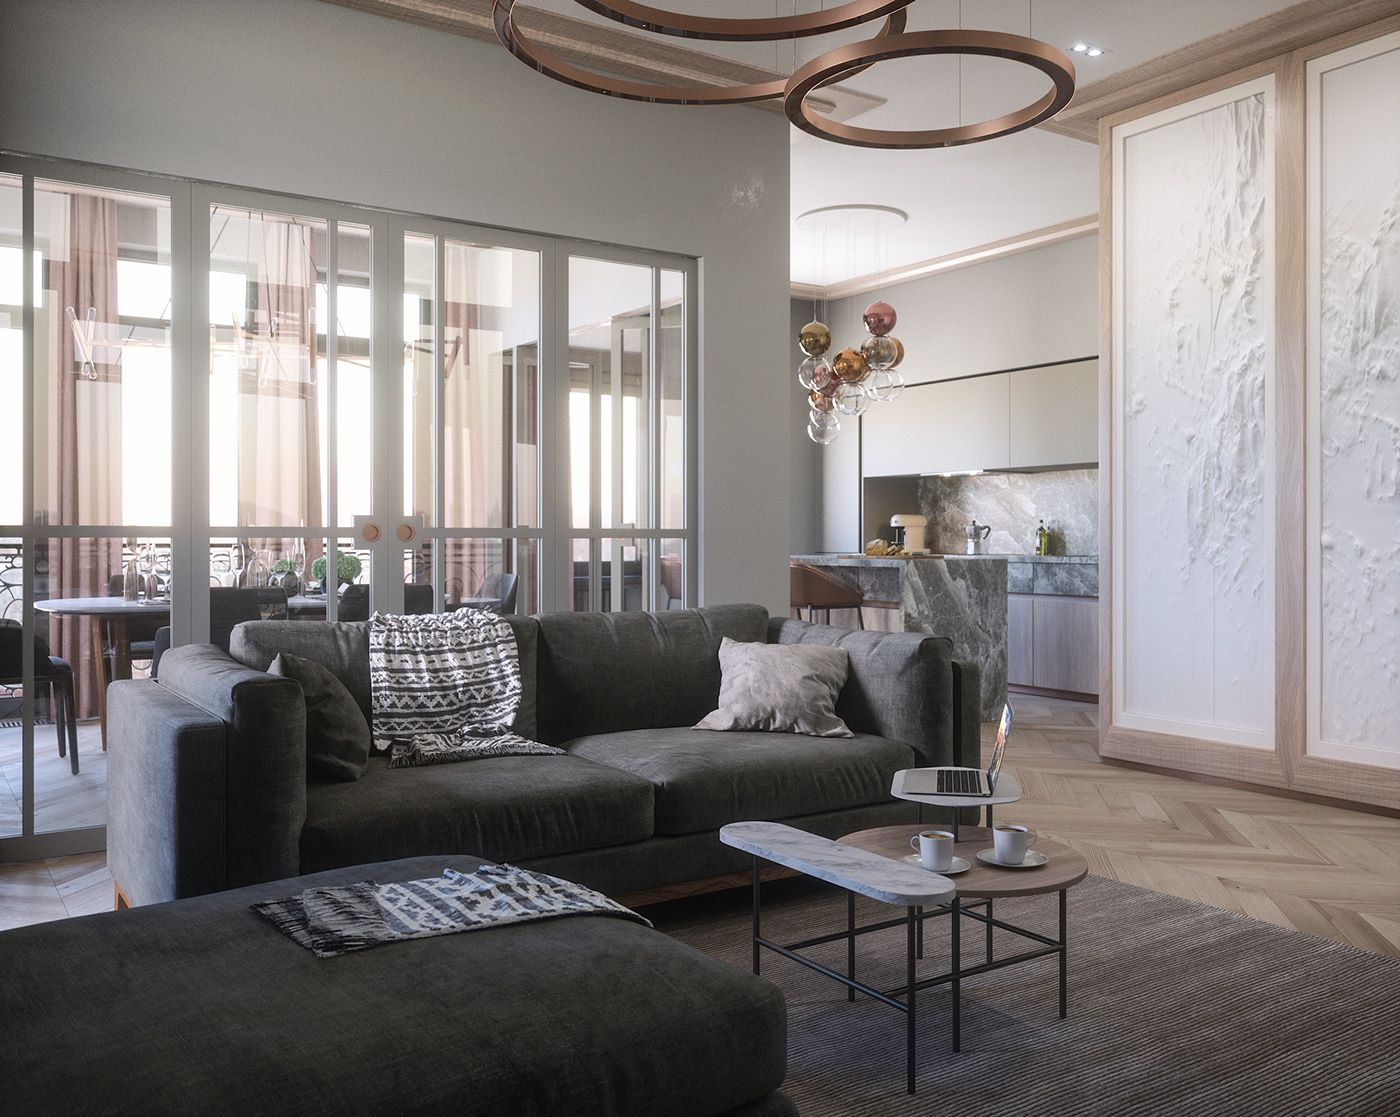 What Is Modern Classic Style In Interior Design Inspiration Design Books Blog Beige Living Room Decor Modern Interior Design Beige Living Rooms